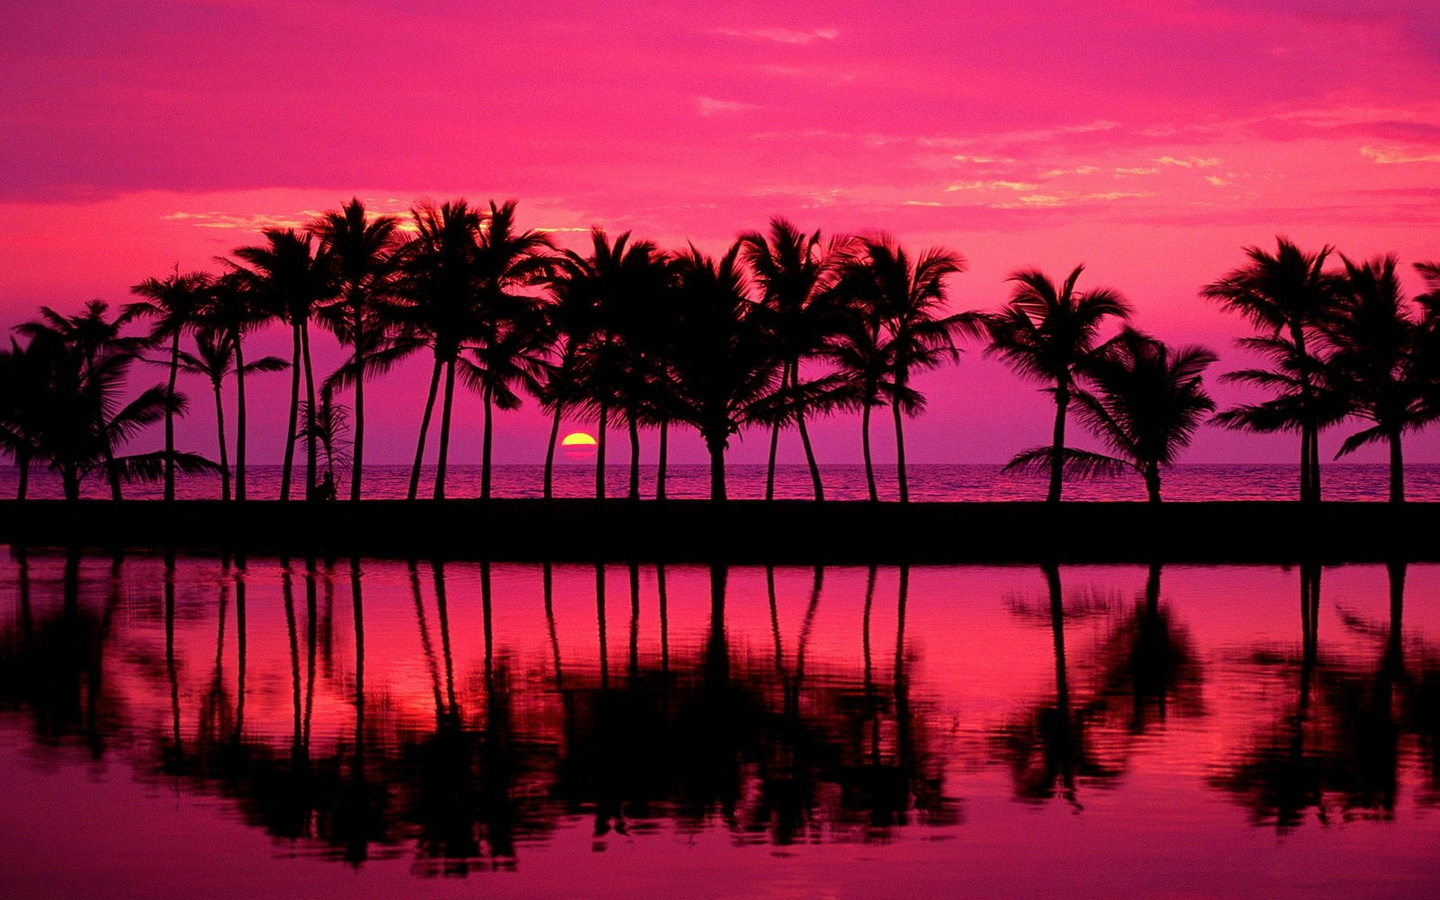 Beach Sunset Backgrounds Tumblr: California Palm Trees Wallpaper